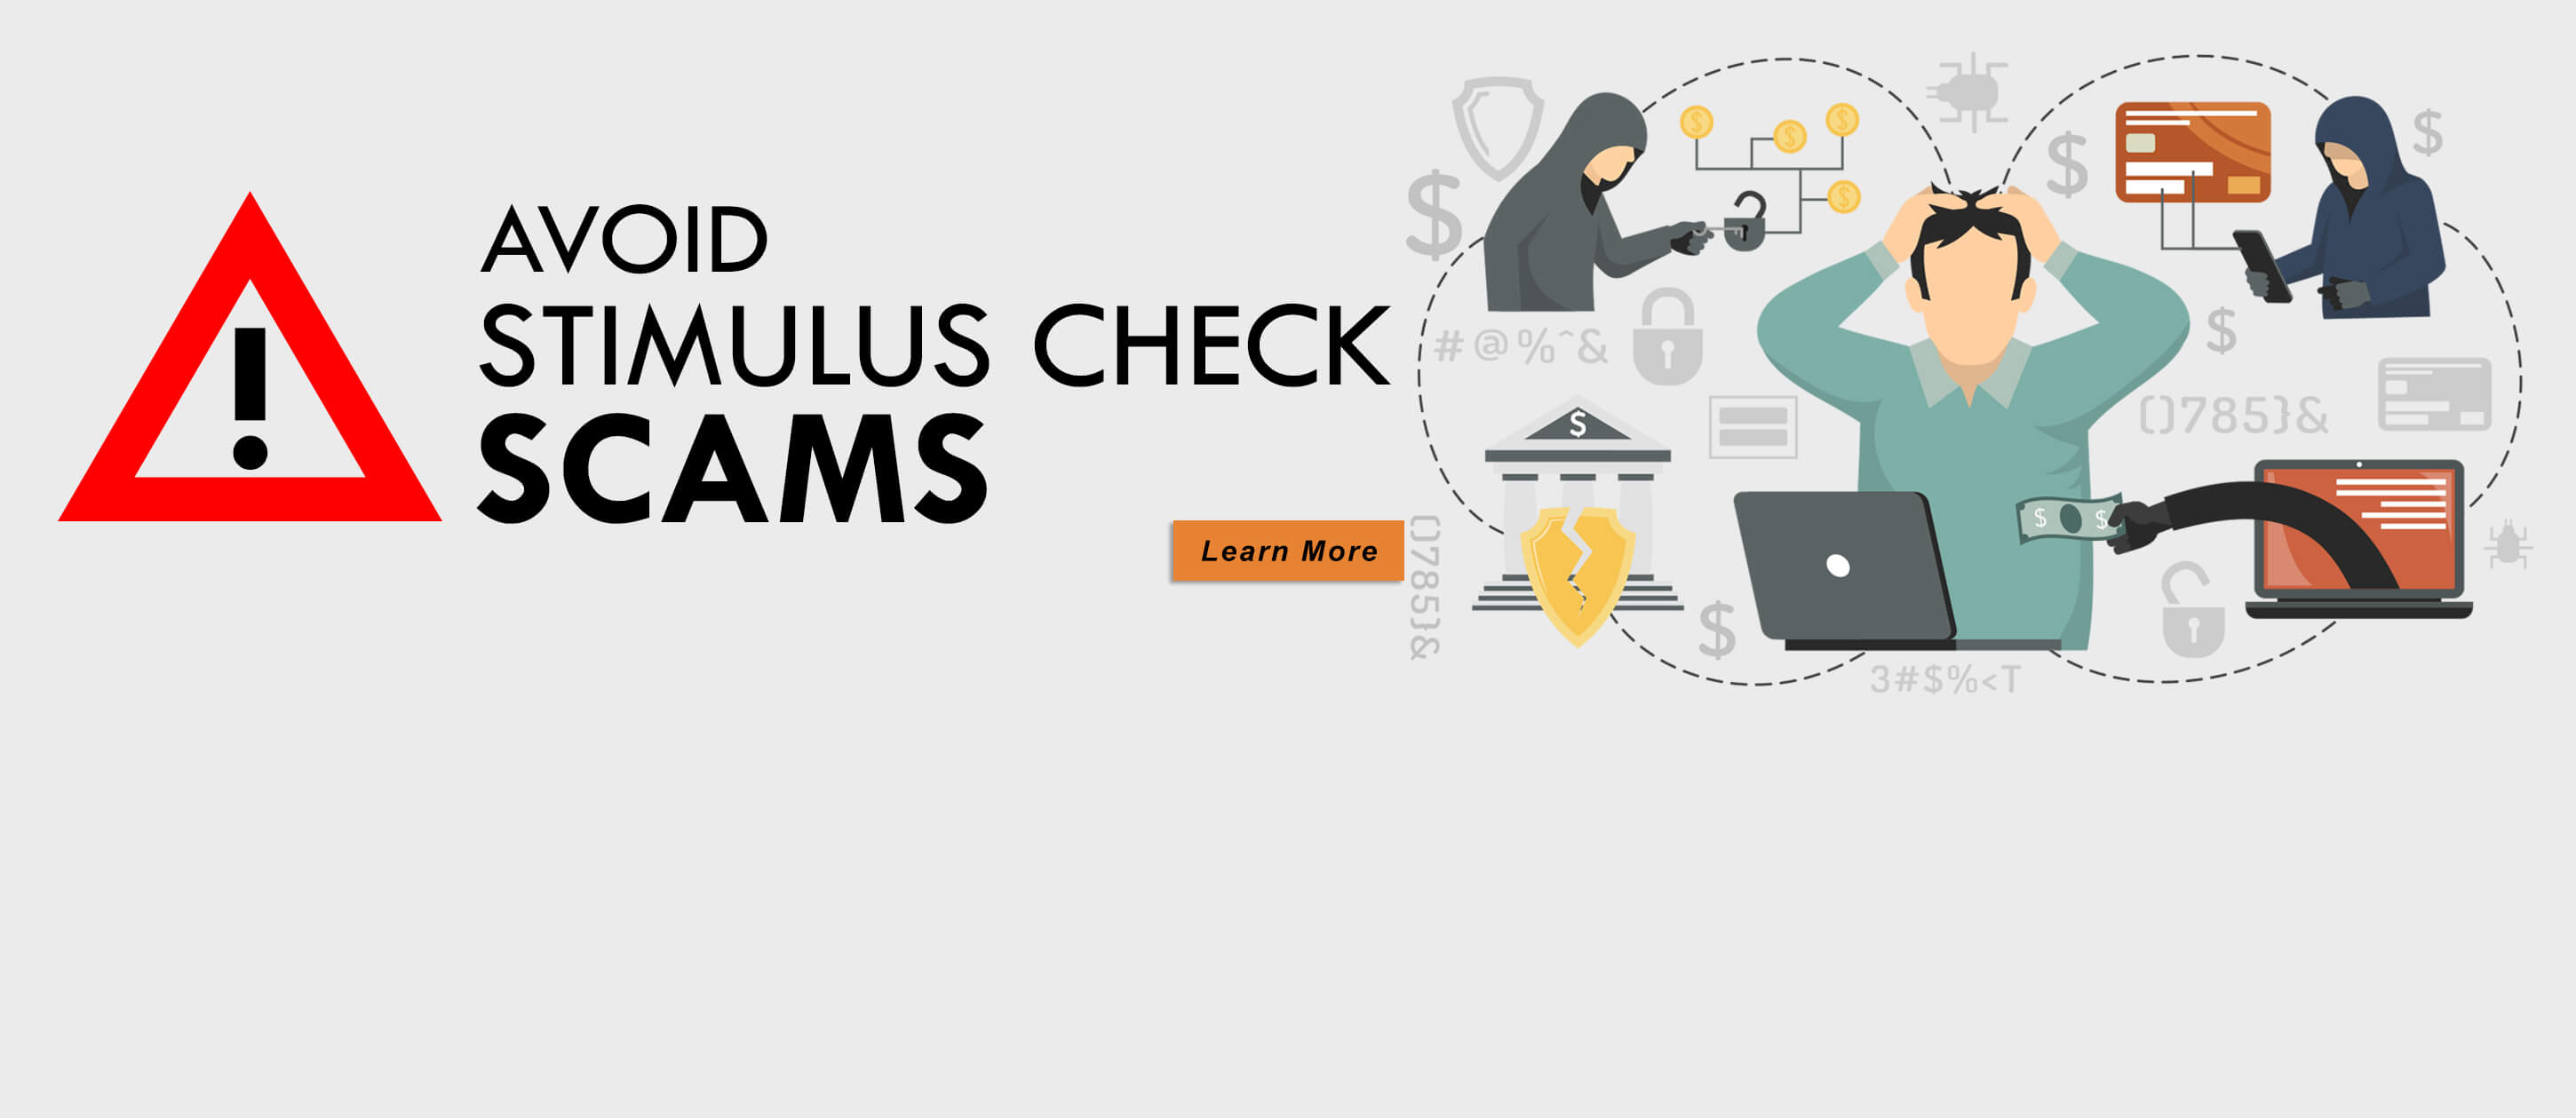 Avoid Stimulus Check Fraud